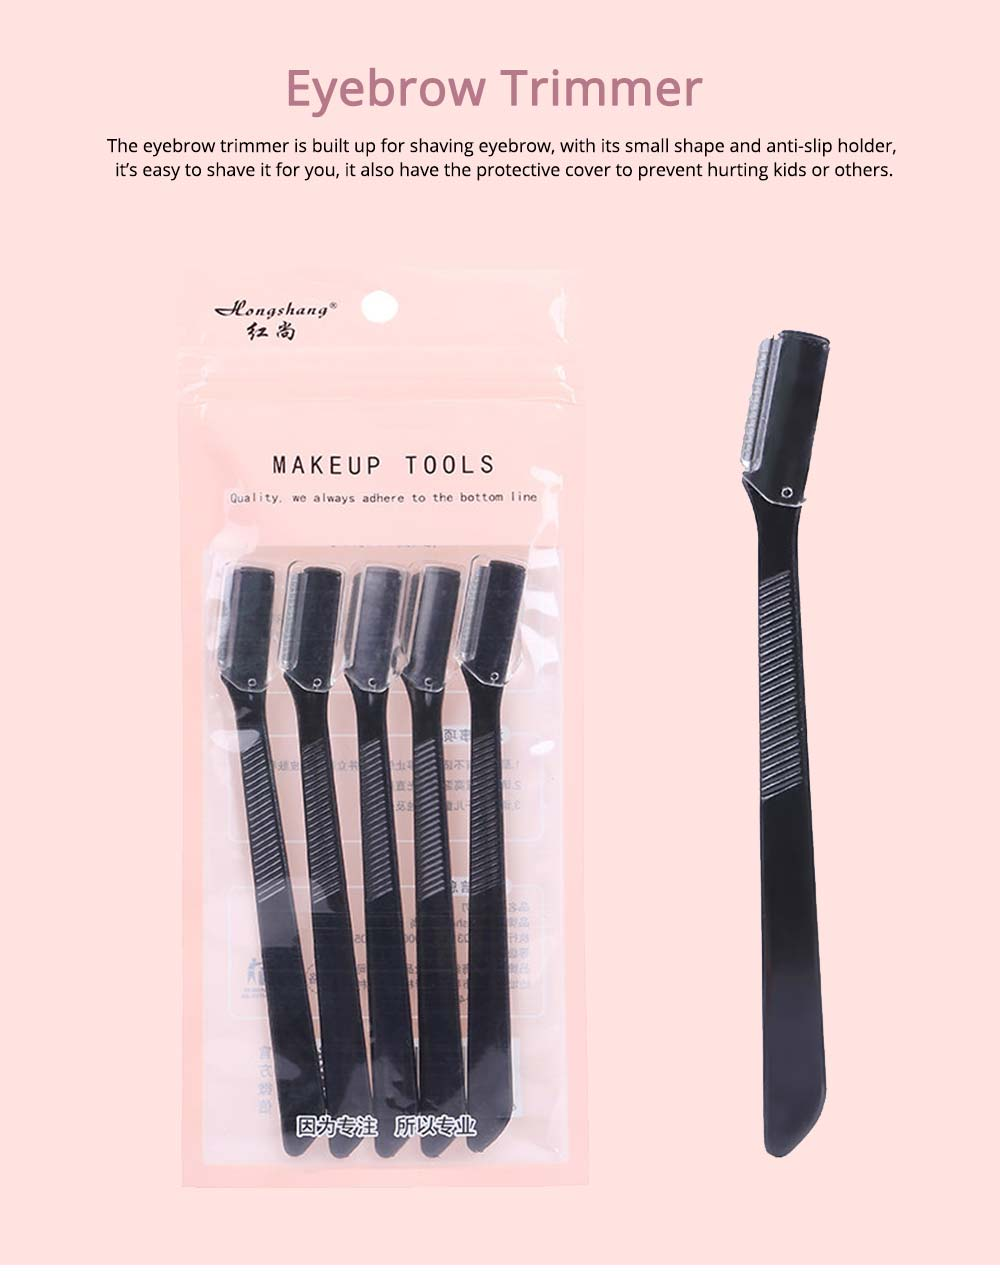 Eyebrow Trimmer - Professional Eyebrow Shaving Blade for Female Makeup Tools 0